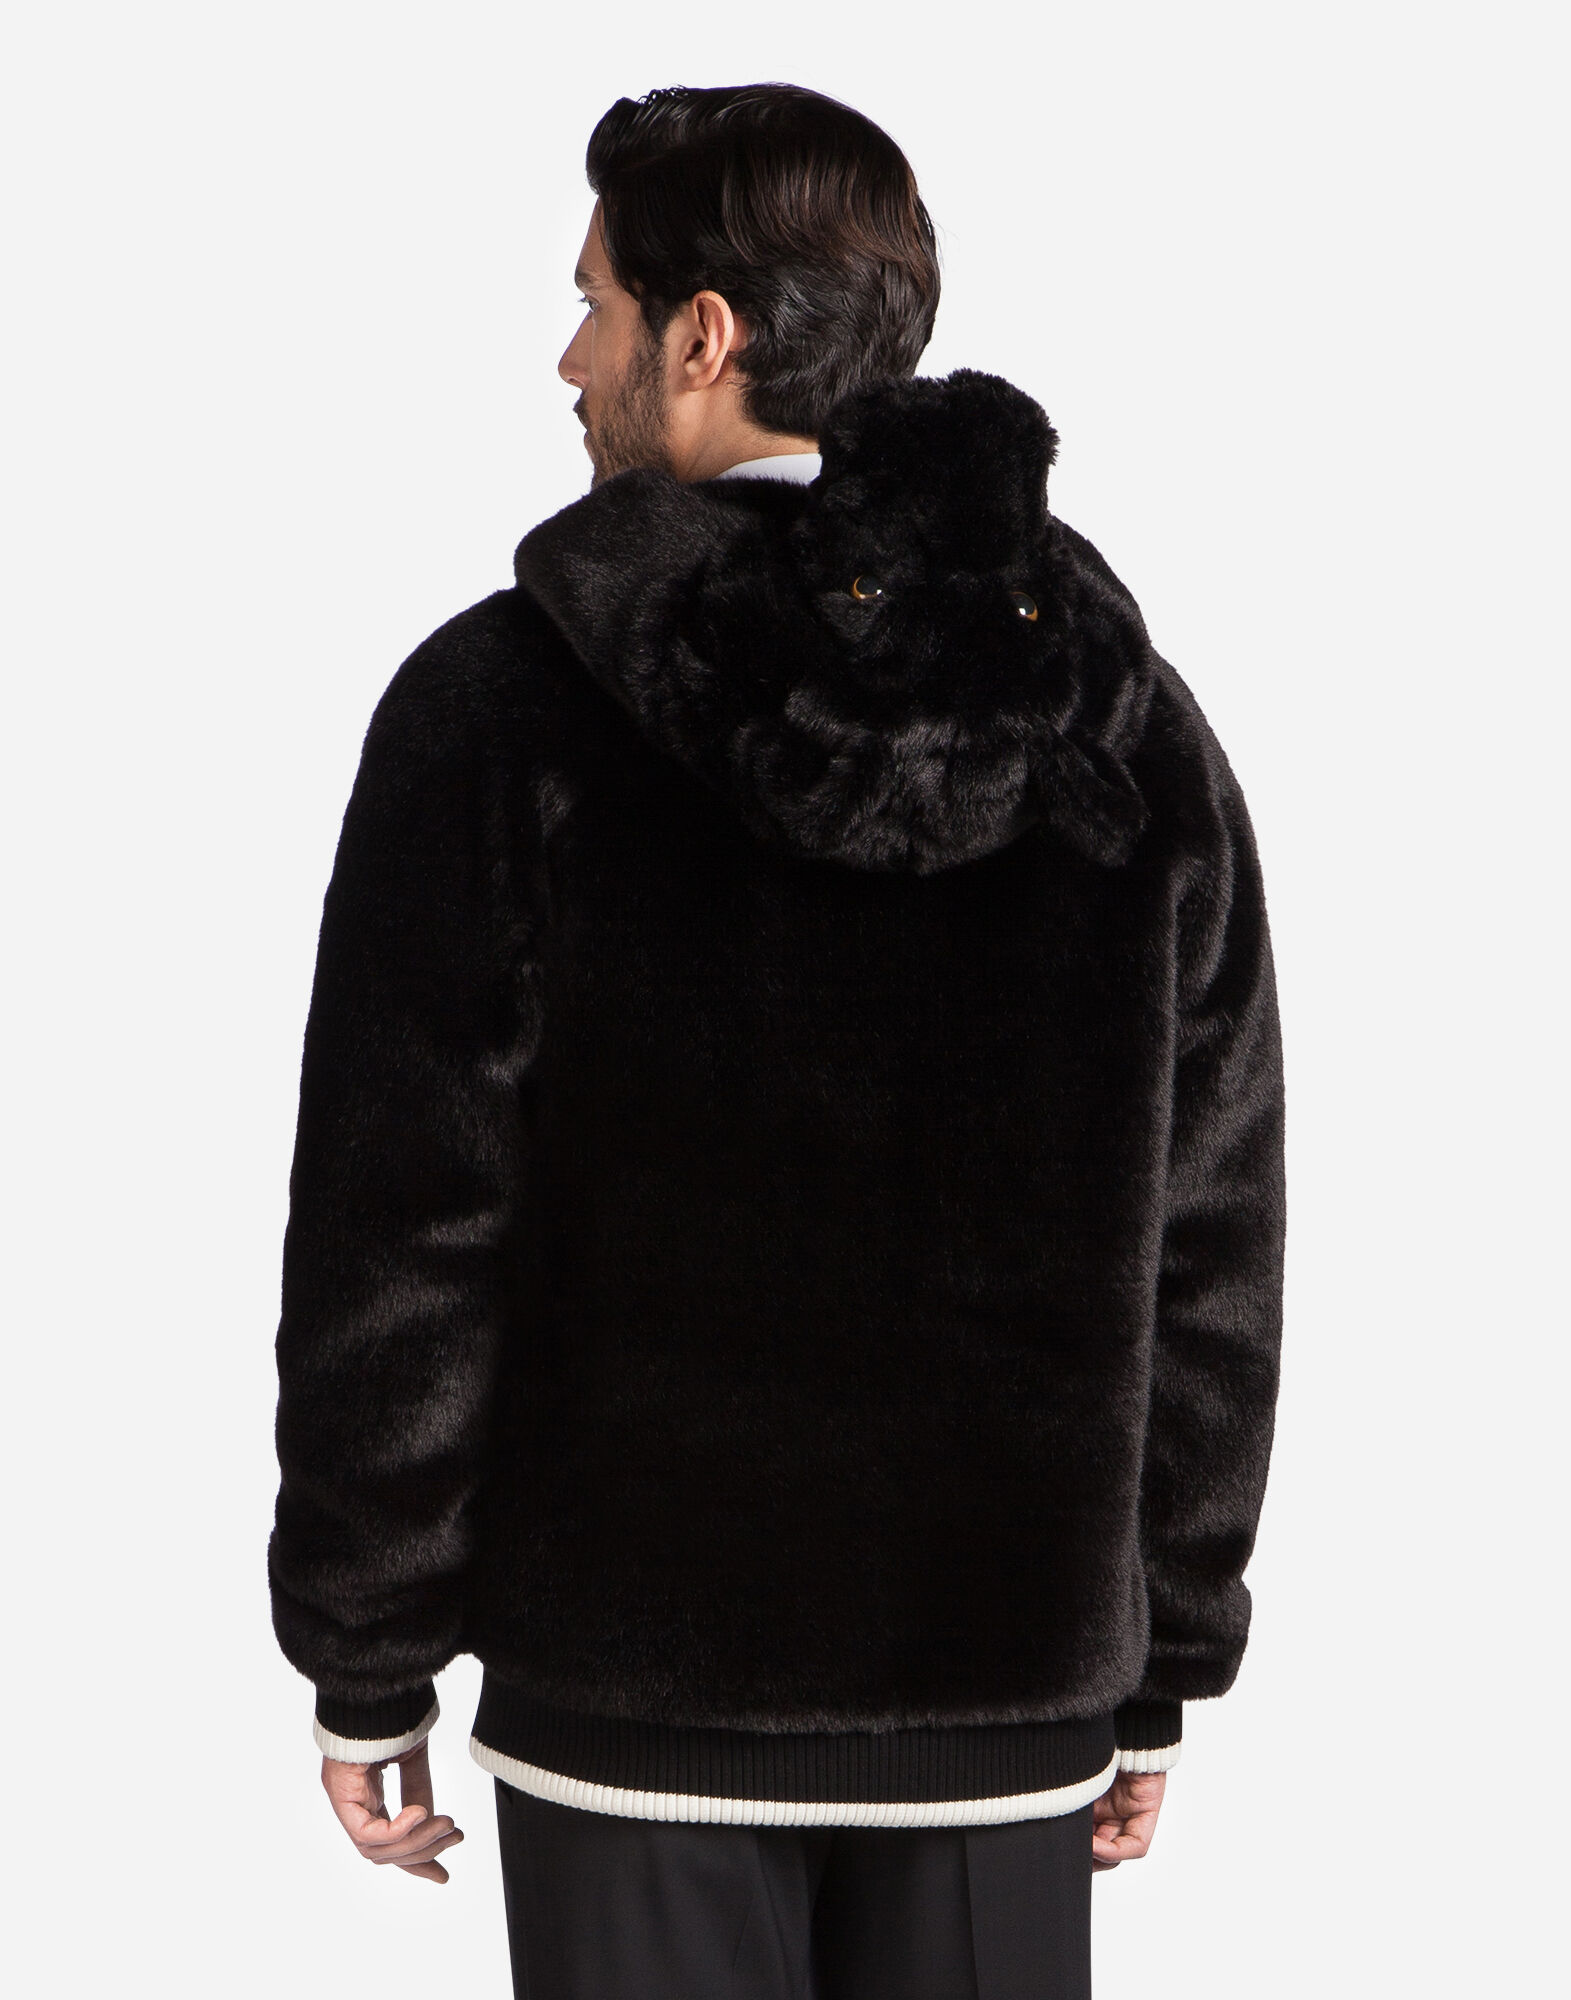 BOMBER JACKET IN ECO FUR